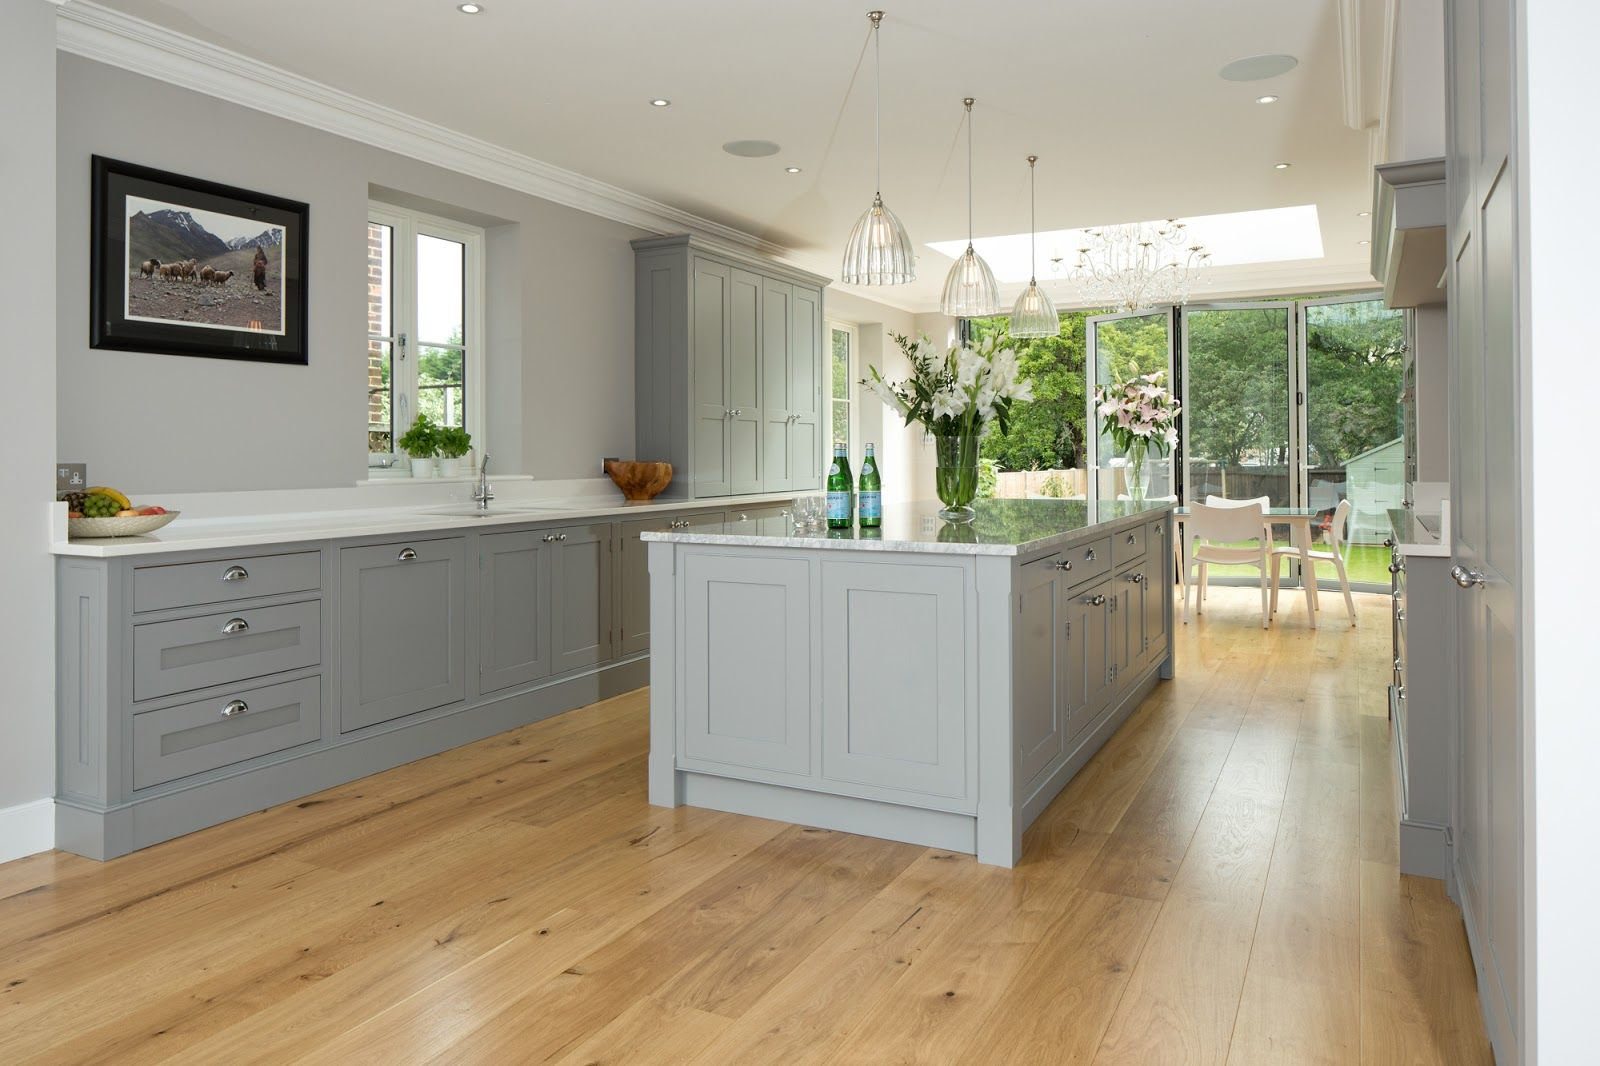 light grey shaker kitchens google search kitchen light grey shaker kitchens google search